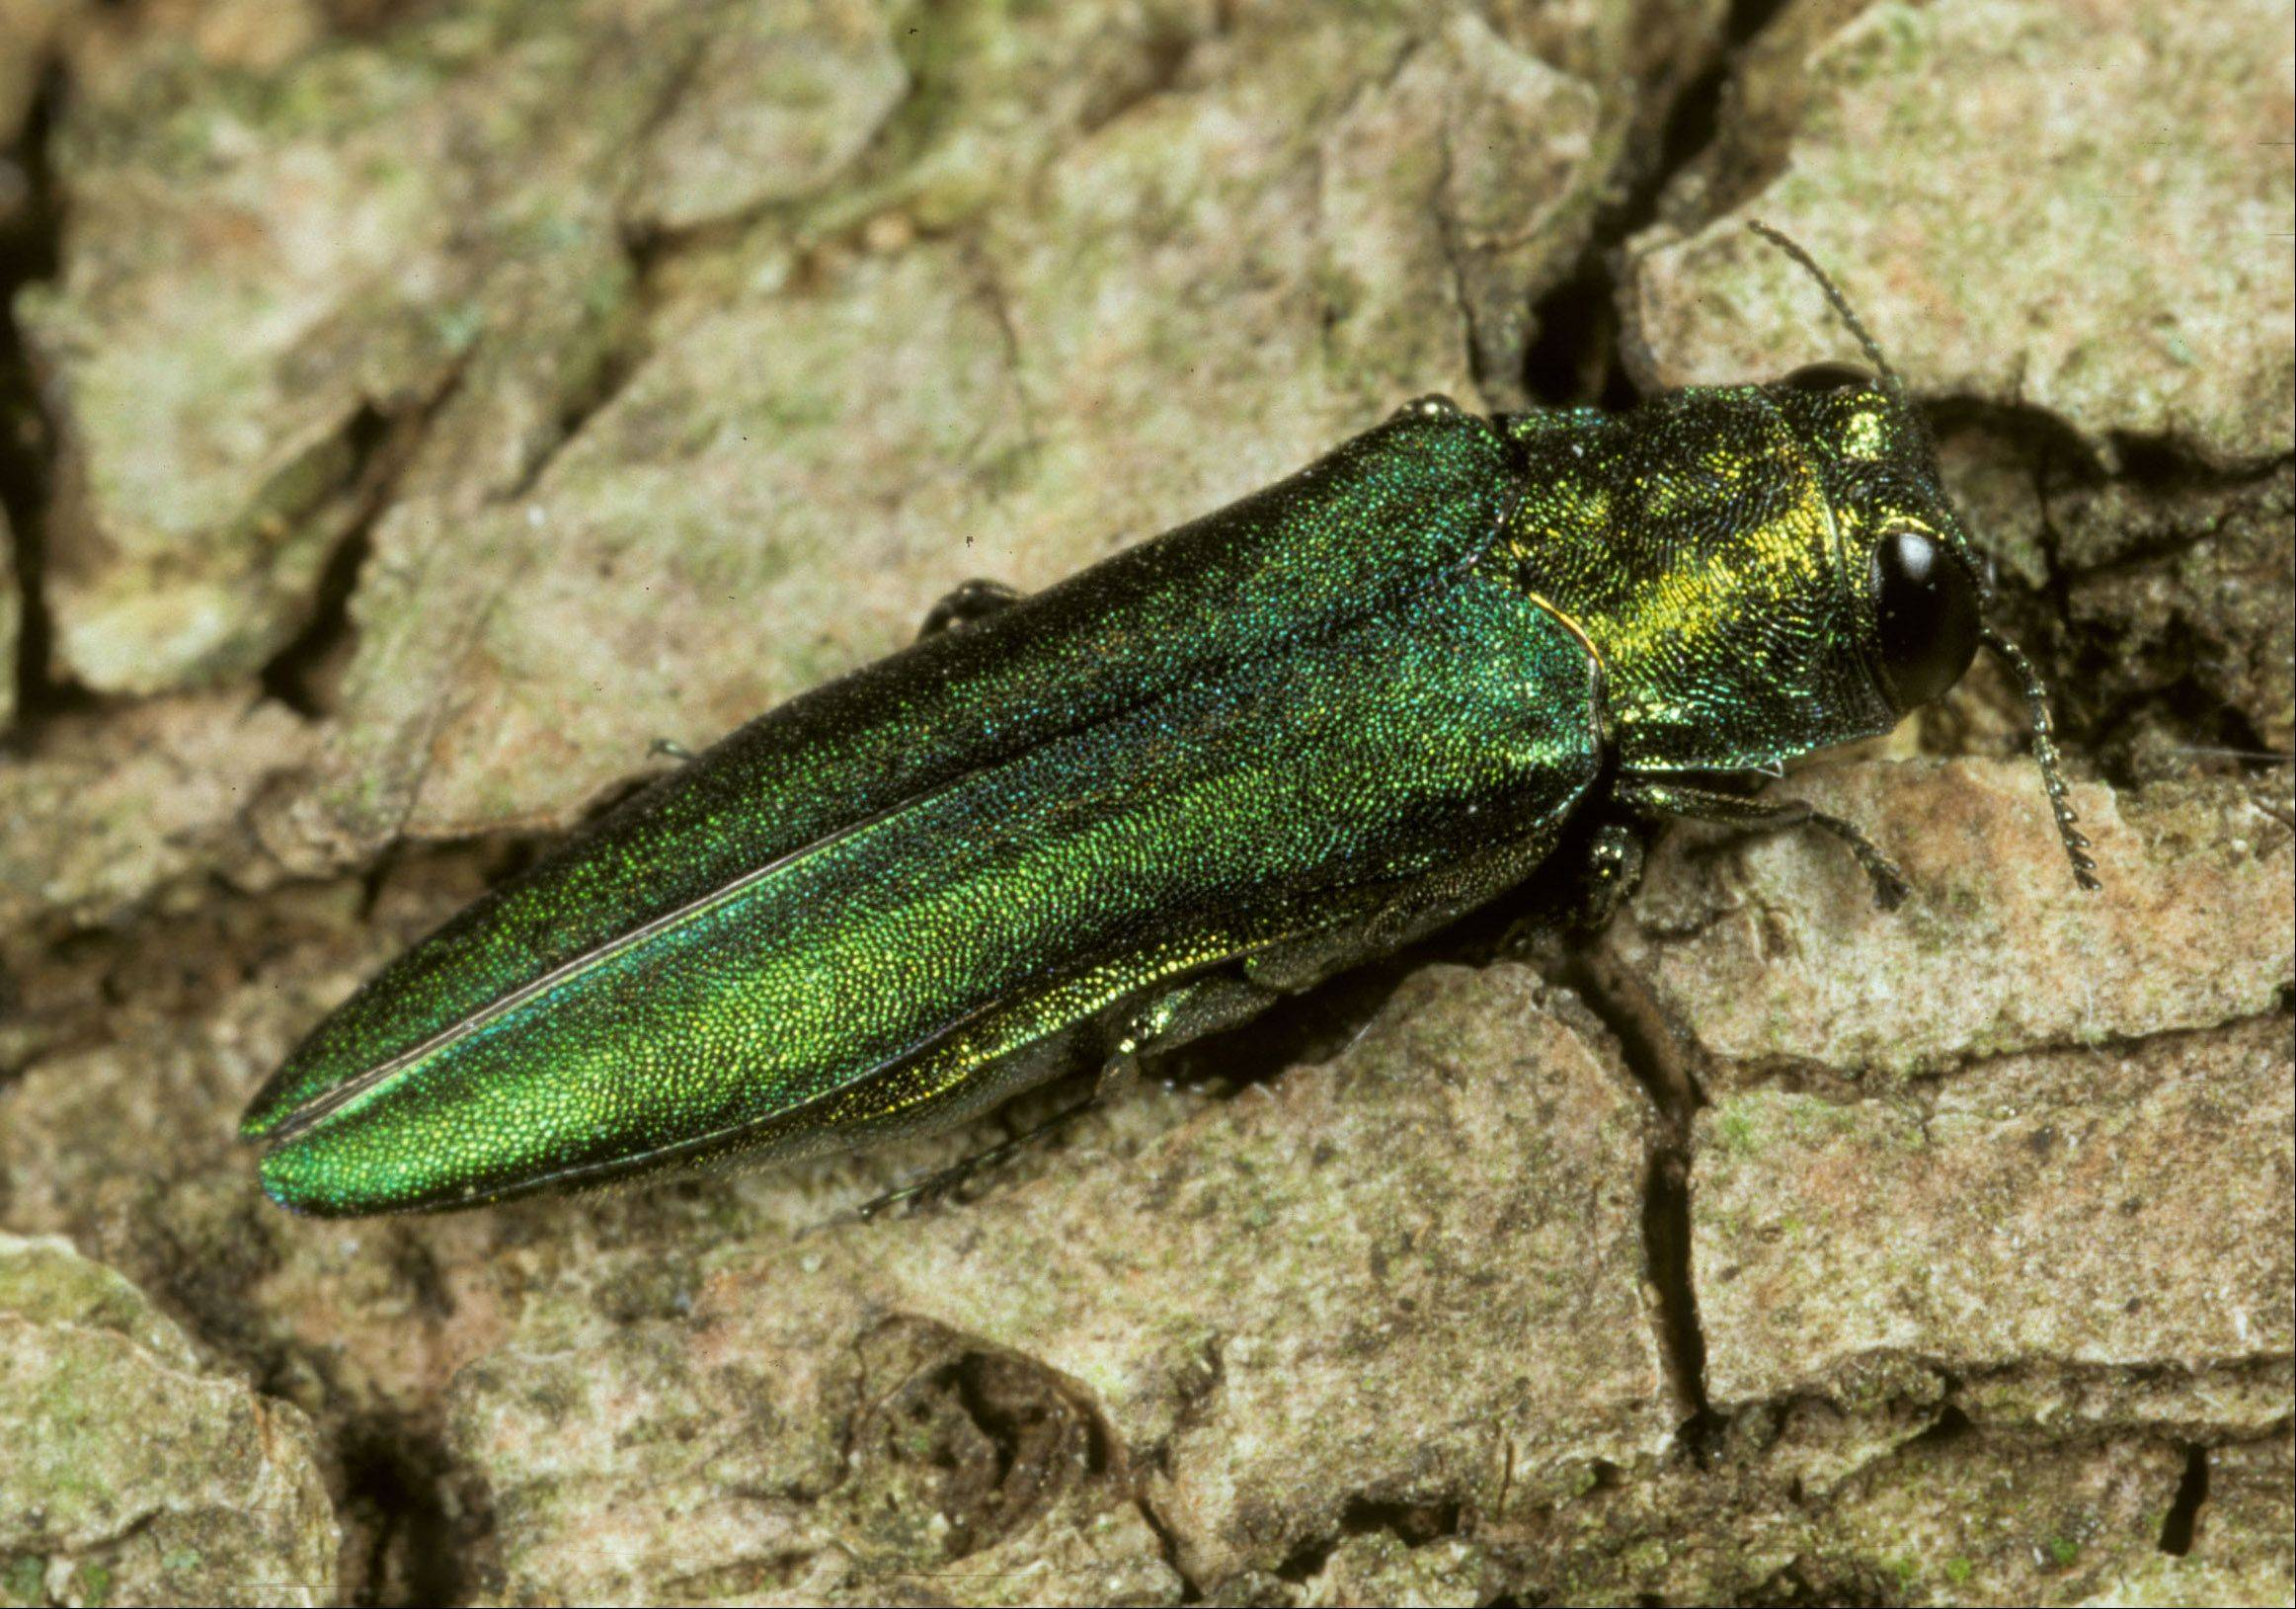 The emerald ash borer has sparked a debate in Winfield on whether money should be spent on a tree survey to determine the extent of the problem.